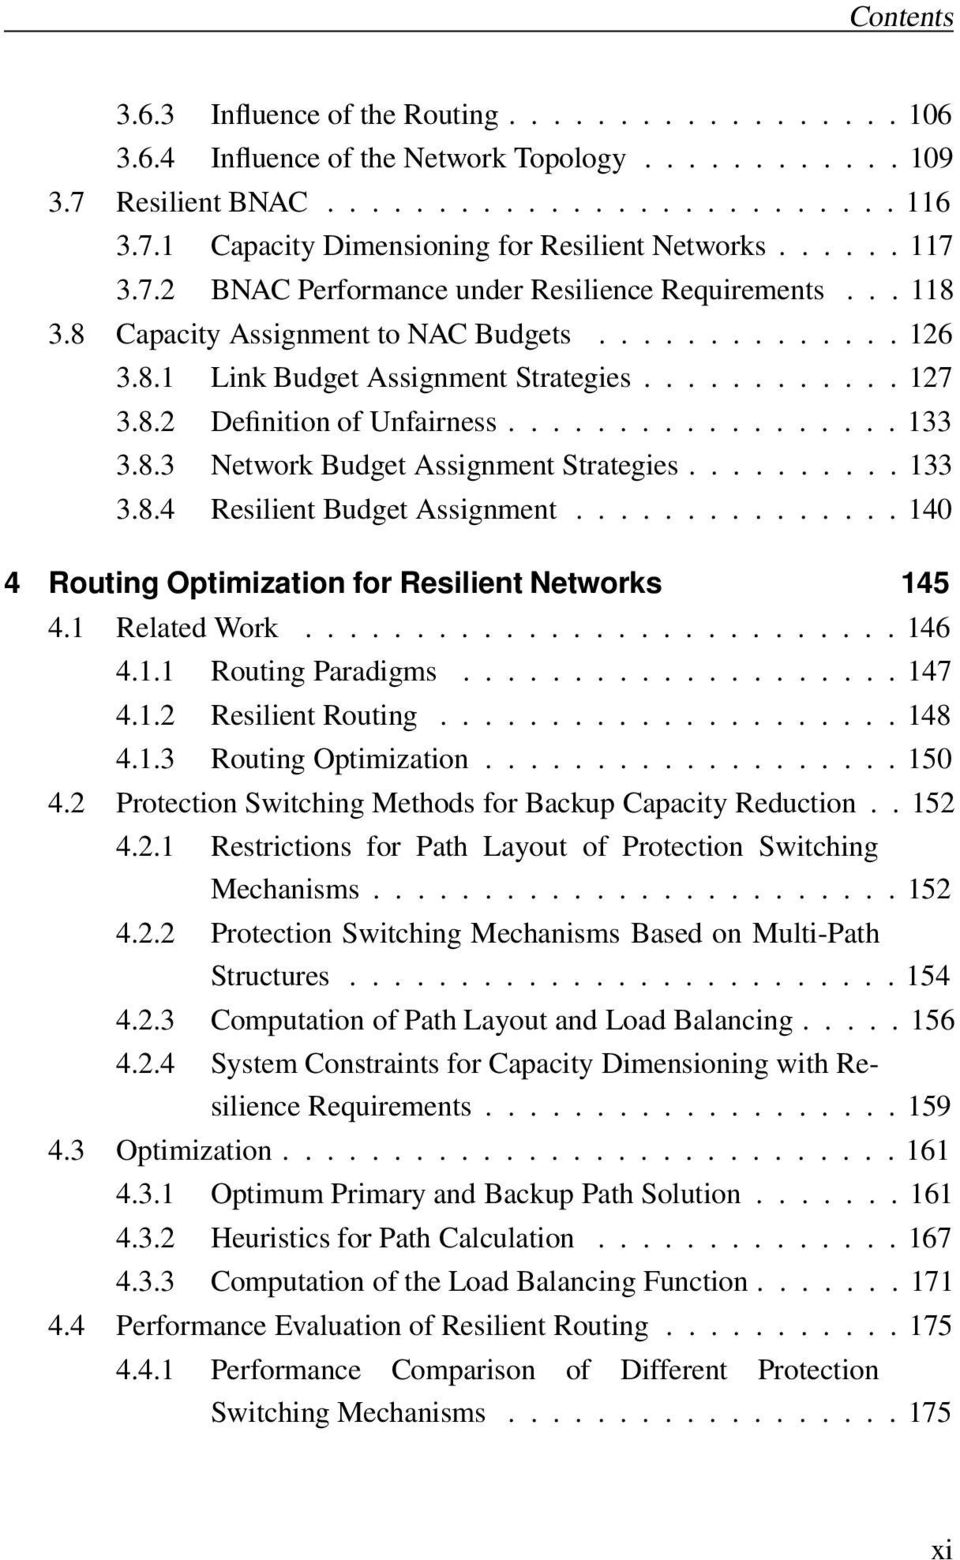 ................. 133 3.8.3 Network Budget Assignment Strategies.......... 133 3.8.4 Resilient Budget Assignment............... 140 4 Routing Optimization for Resilient Networks 145 4.1 Related Work.